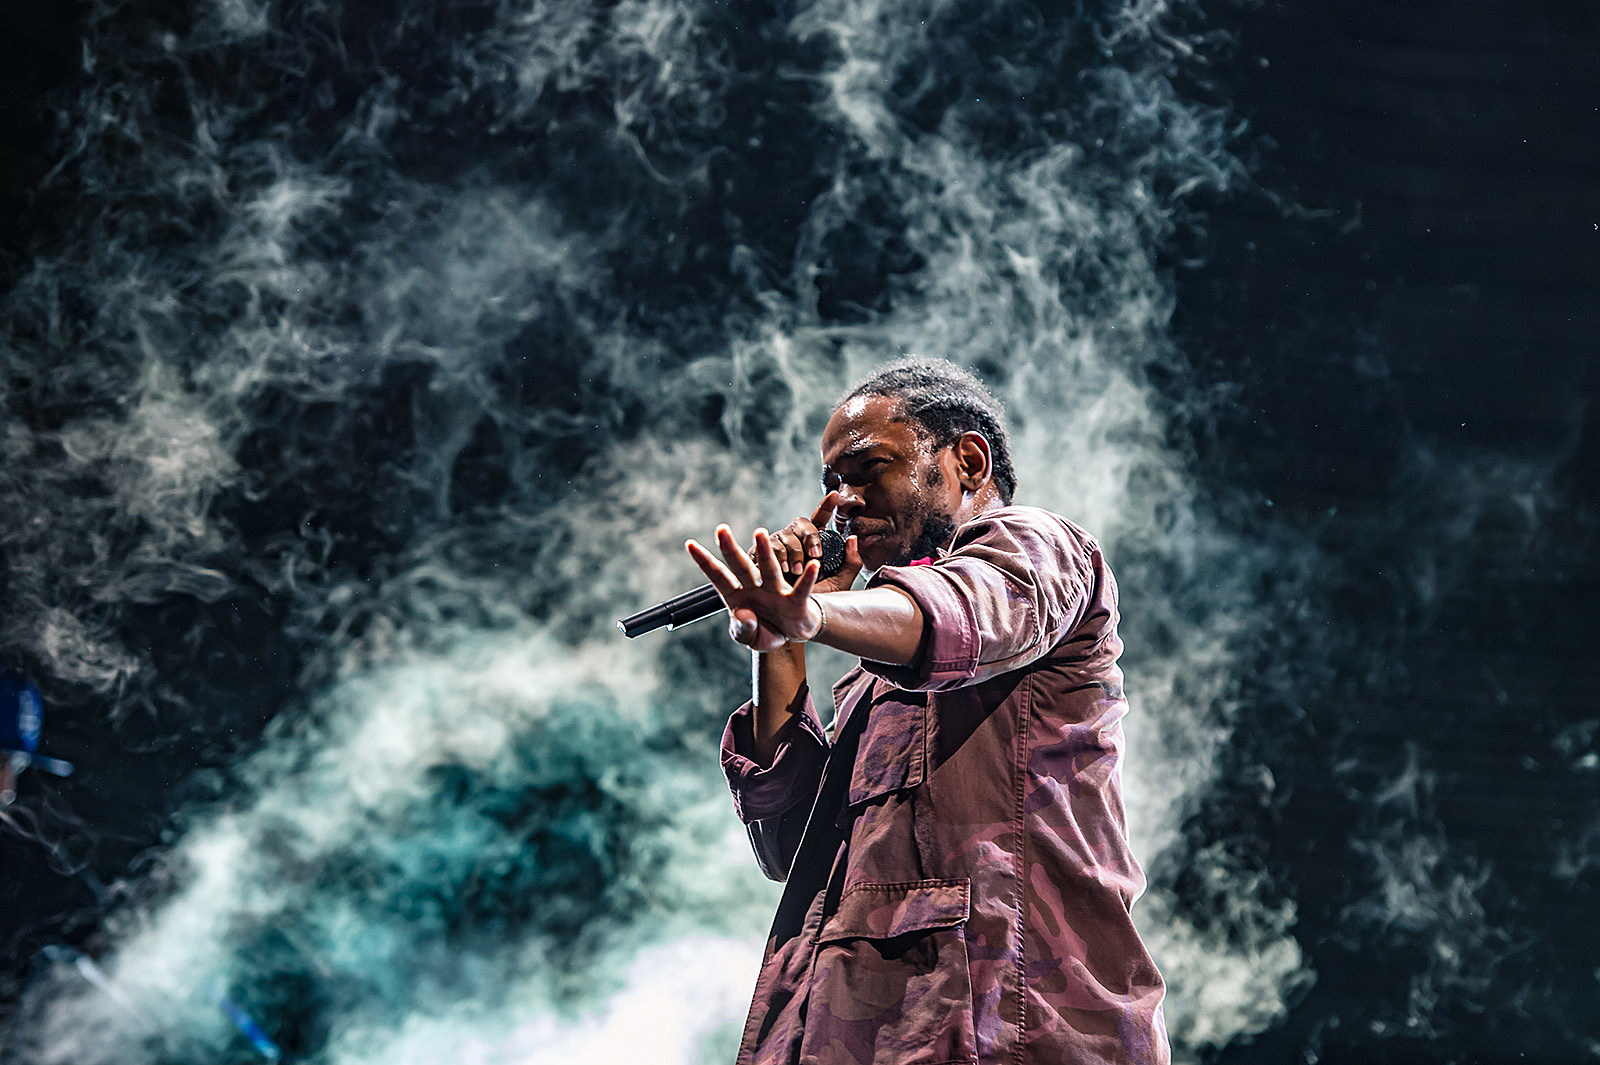 Kendrick Lamar at Panorama Festival 2016 - Saturday